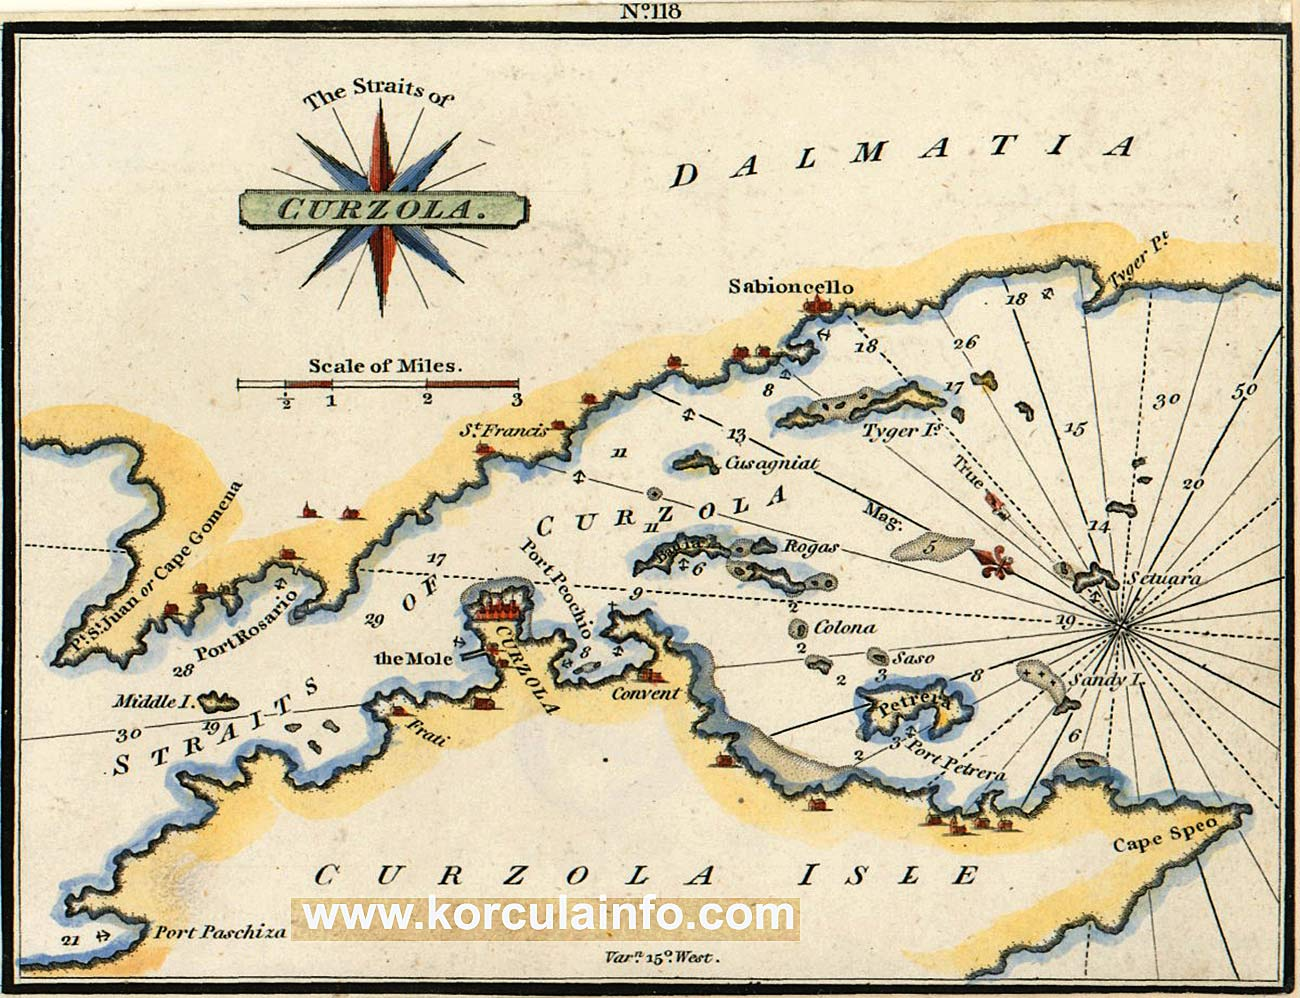 Korcula Map (1800s) - The Straits of Curzola